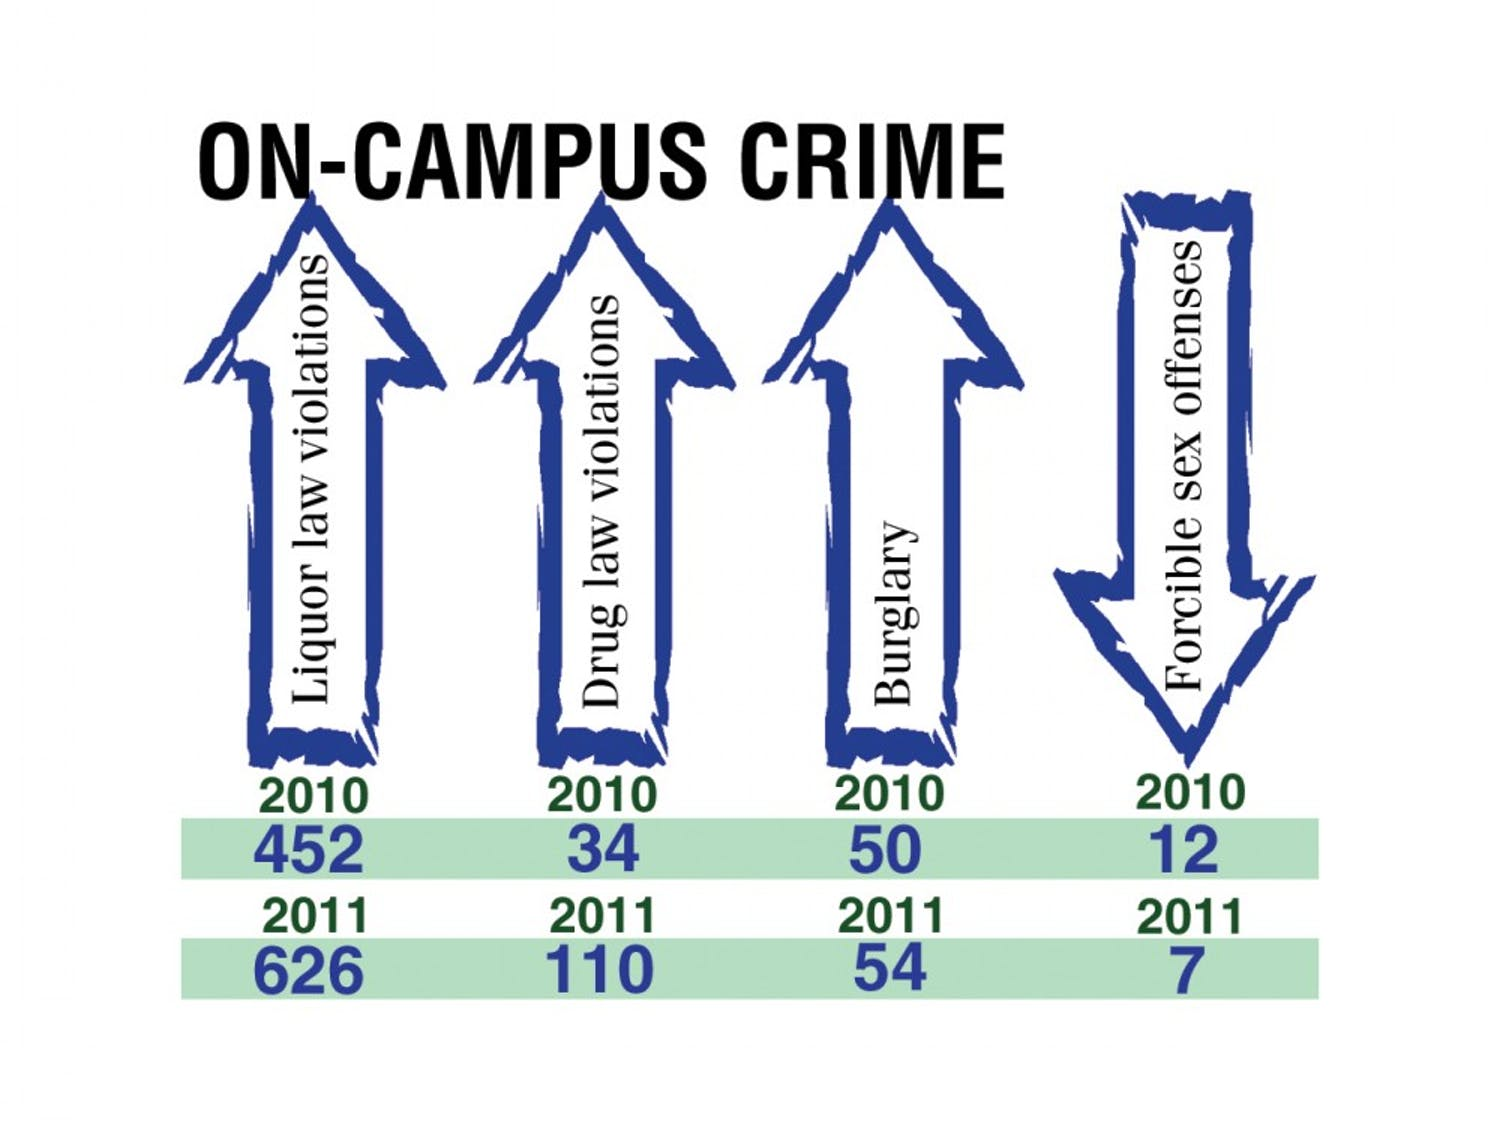 The annual Clery Report, which federal law requires universities to publish, detailed 2011 crime statistics for the Duke campus and some of the surrounding area.